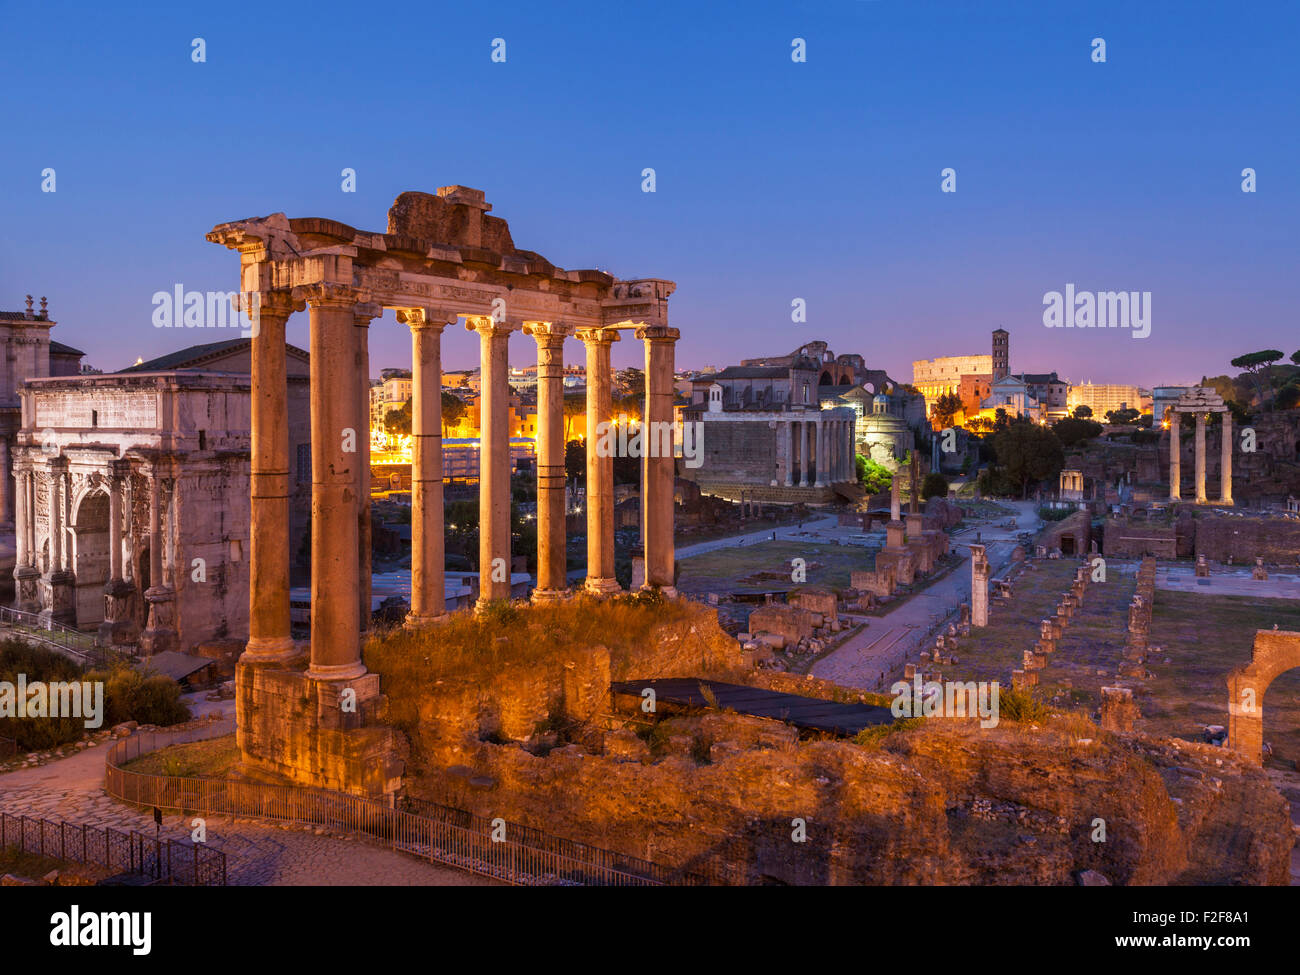 The columns are the ruins of The Temple of Saturn, a temple to the god Saturn in the Roman Forum  Rome Lazio  Italy - Stock Image